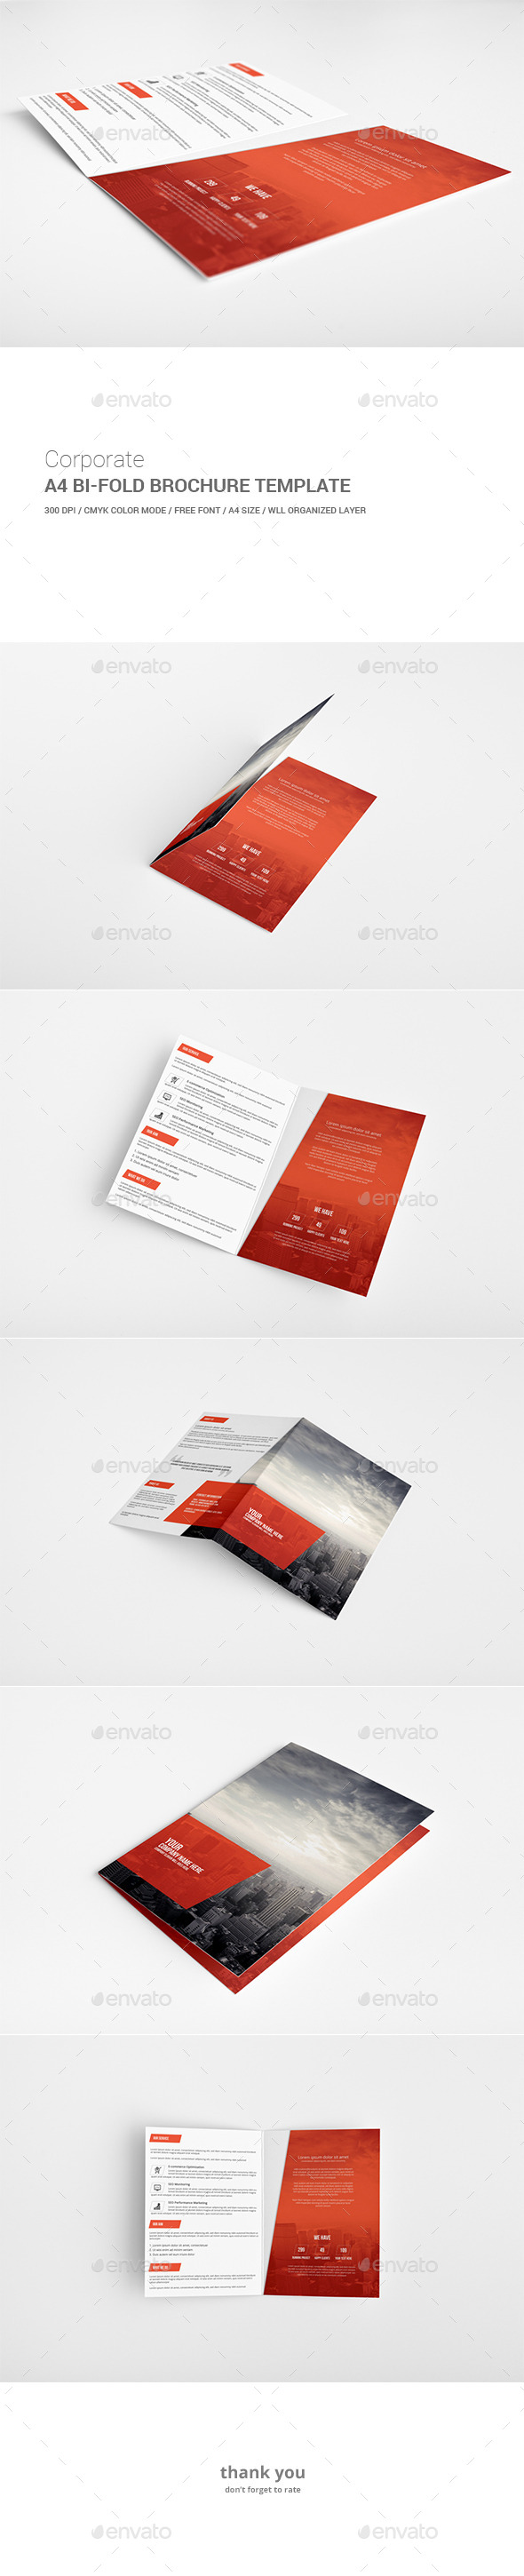 Graphicriver corporate bi fold brochure template 11948467 for Double fold brochure template